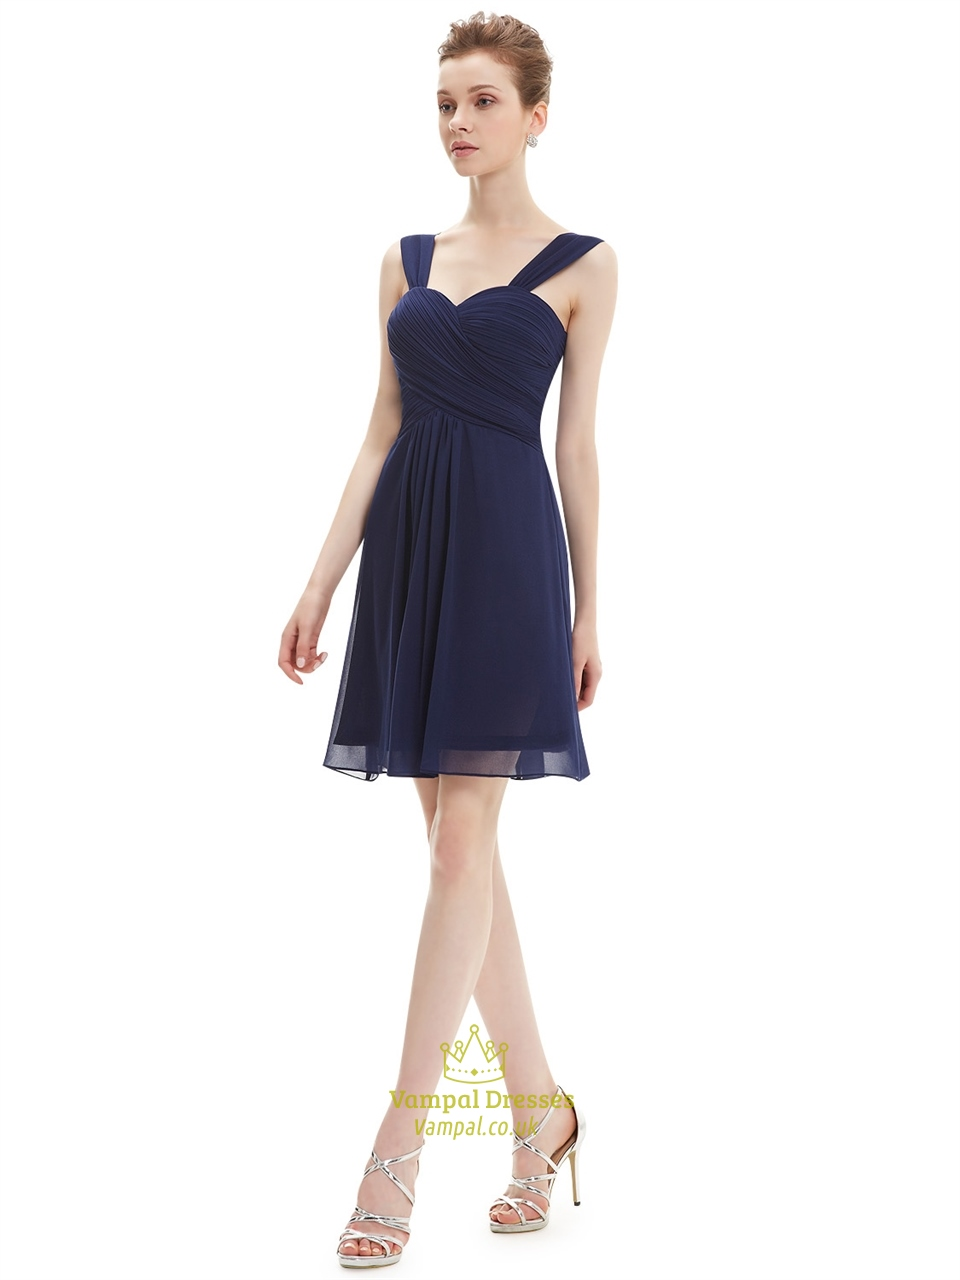 92d6377b68e2 Navy Blue Chiffon Ruched Bodice Short Bridesmaid Dress With Straps SKU  -NW1167